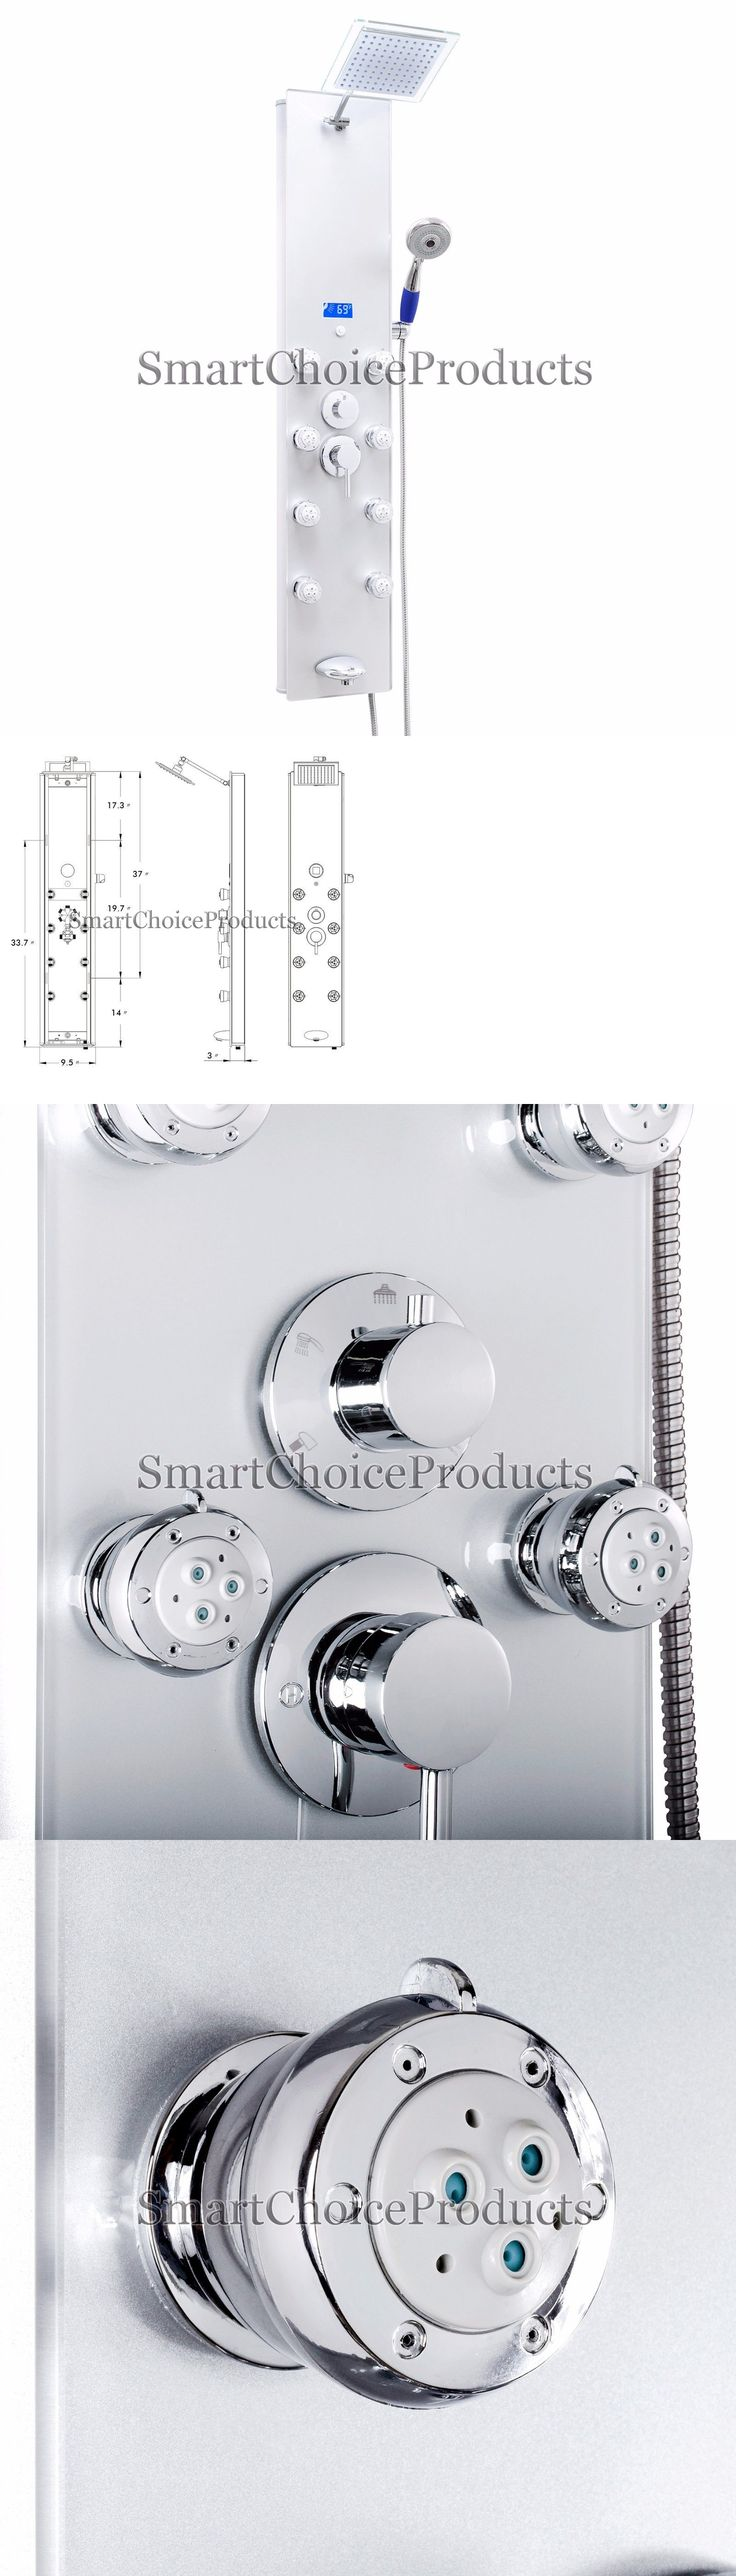 Shower Panels and Massagers 121849: 52 Modern Contemporary Shower Tower Panel System With Jet Spray In Space Silver -> BUY IT NOW ONLY: $199.99 on eBay!